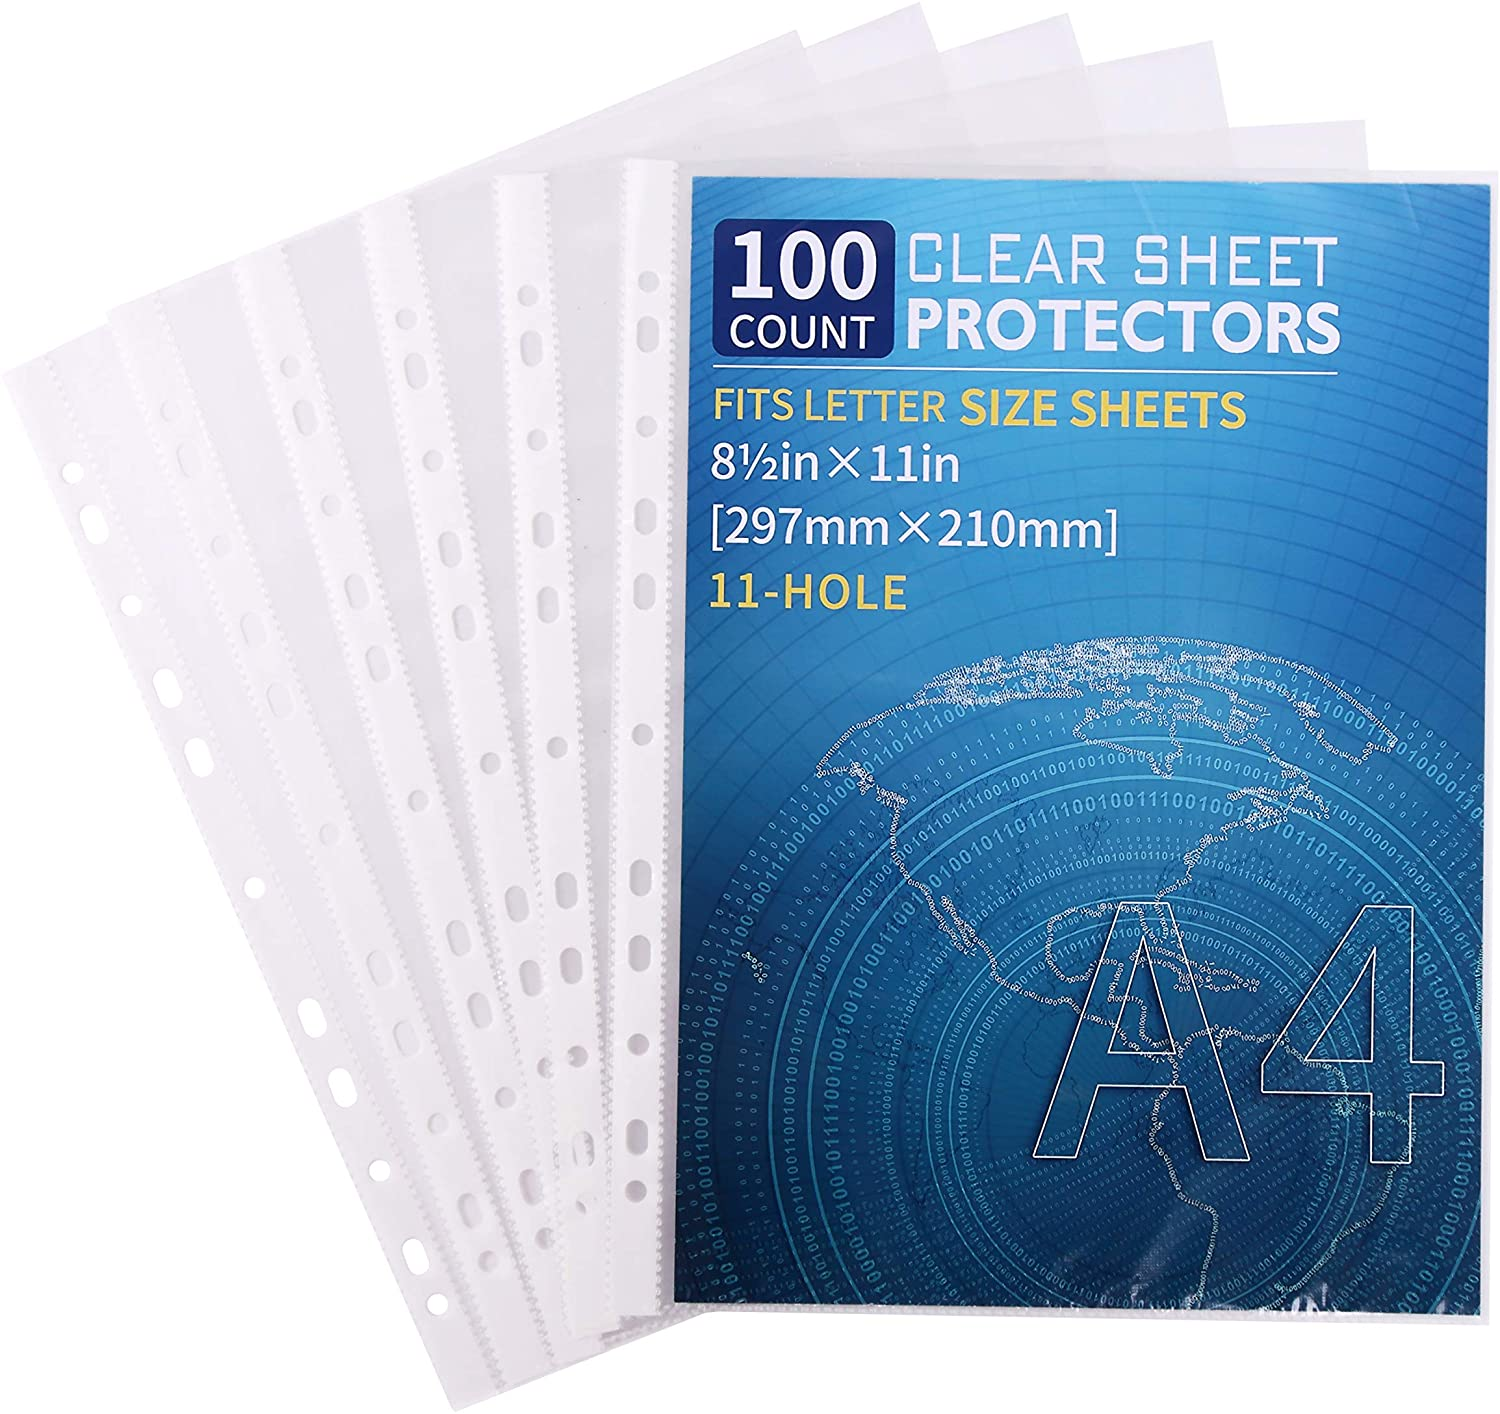 100 Pack Clear Sheet Protectors 8.5 x 11 inch for 2/3/4 Ring Binder, Reinforced 11-Hole, Top Loading Page Paper Protector for Documents Photos, Letter Size Plastic Sleeves for Binders